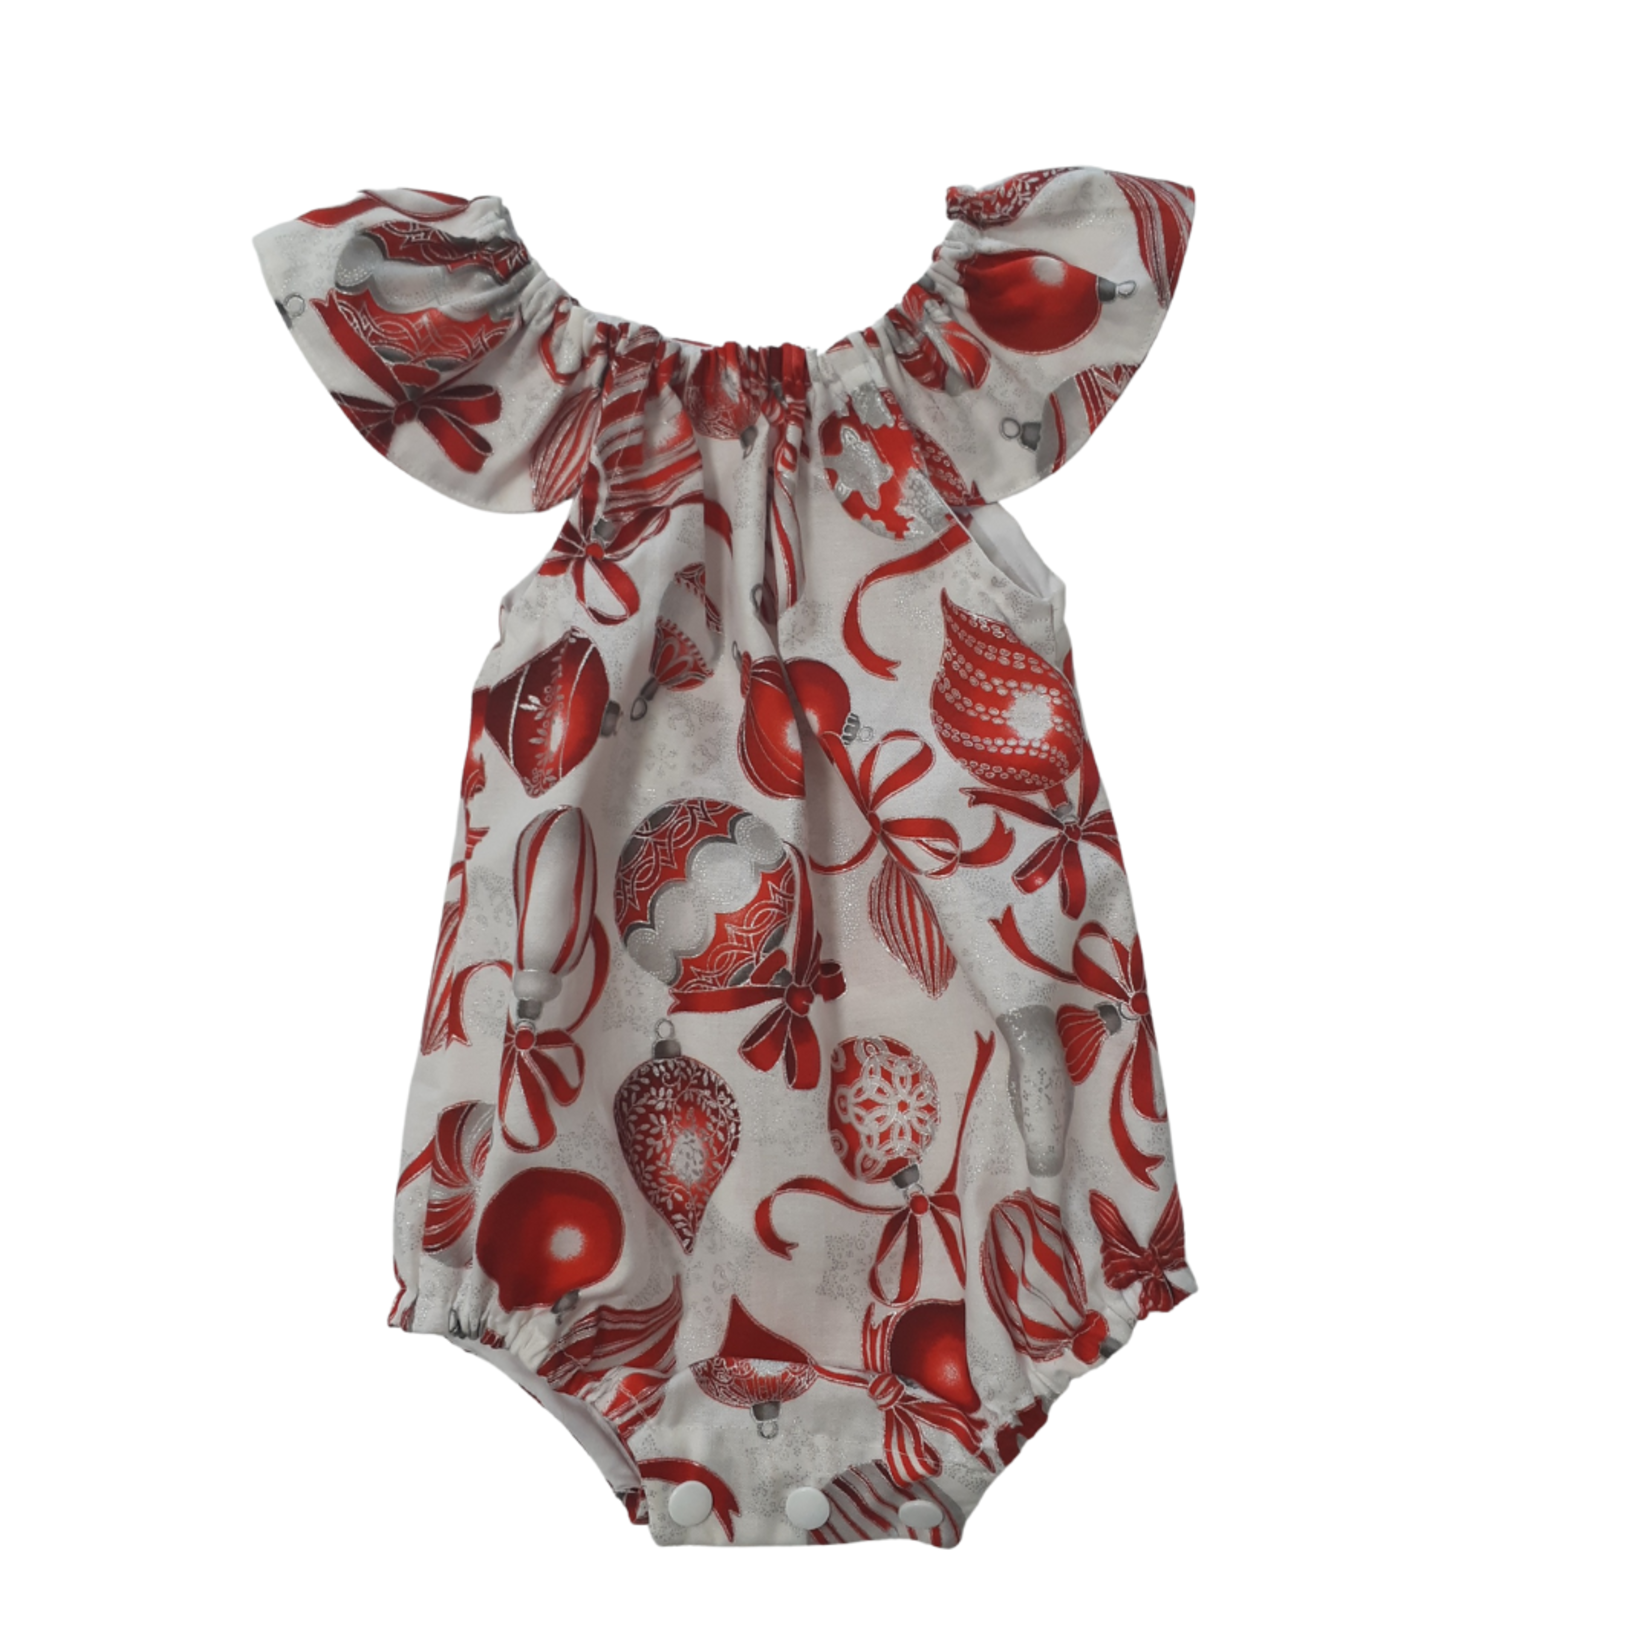 Cadby Cottage Cadby Cottage Xmas Seaside Romper - Red Baubles